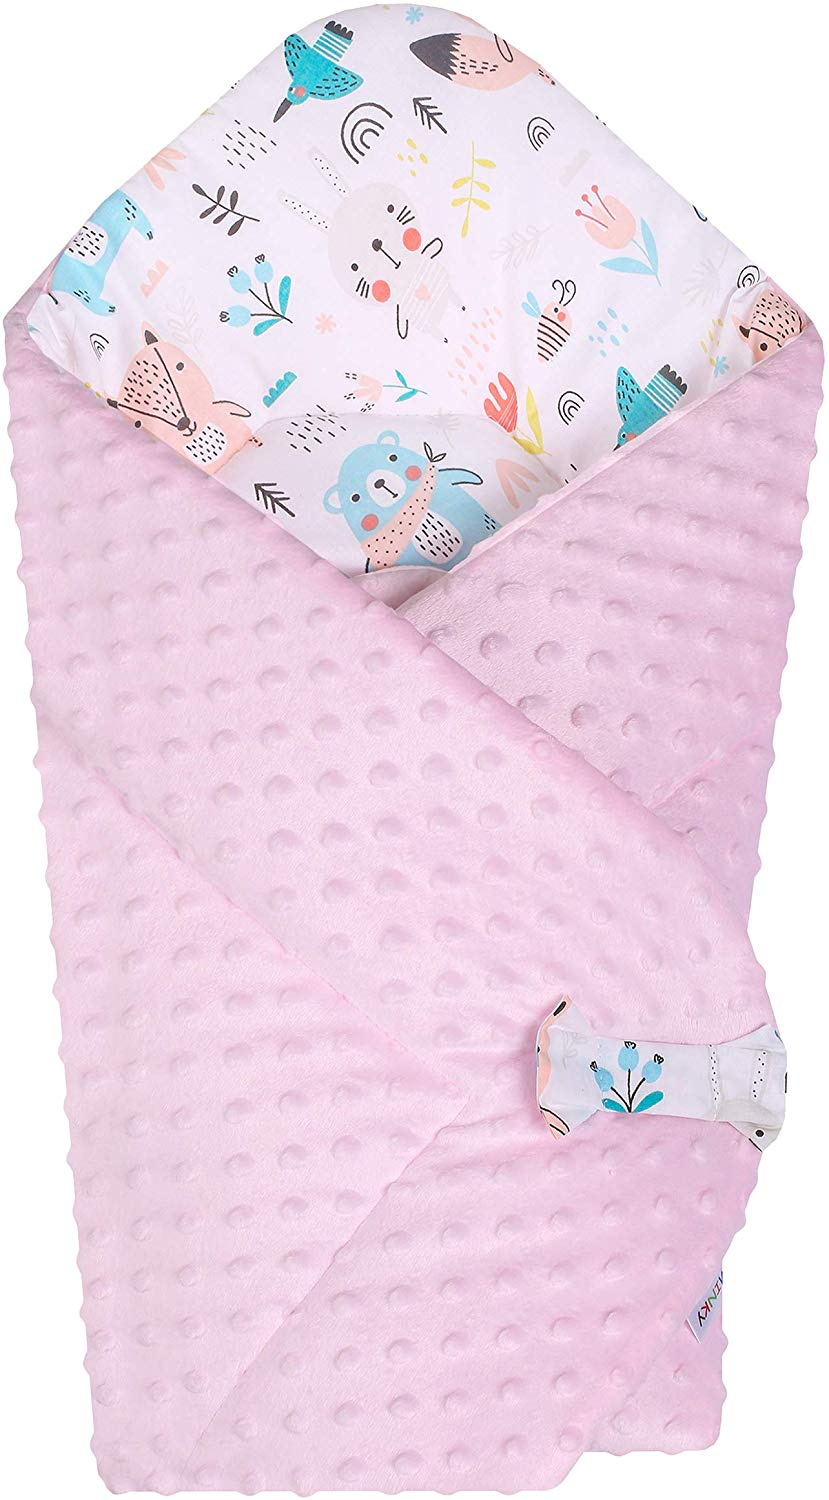 BlueberryShop Minky Fleece Baby Swaddle Wrap Bedding Blanket | Two-Sided Sleeping Bag for Newborns | Intended for Kids Aged 0-3 Months | Perfect as a Baby Shower Gift | 75 x 80 cm | Pink-White - iBuy Africa